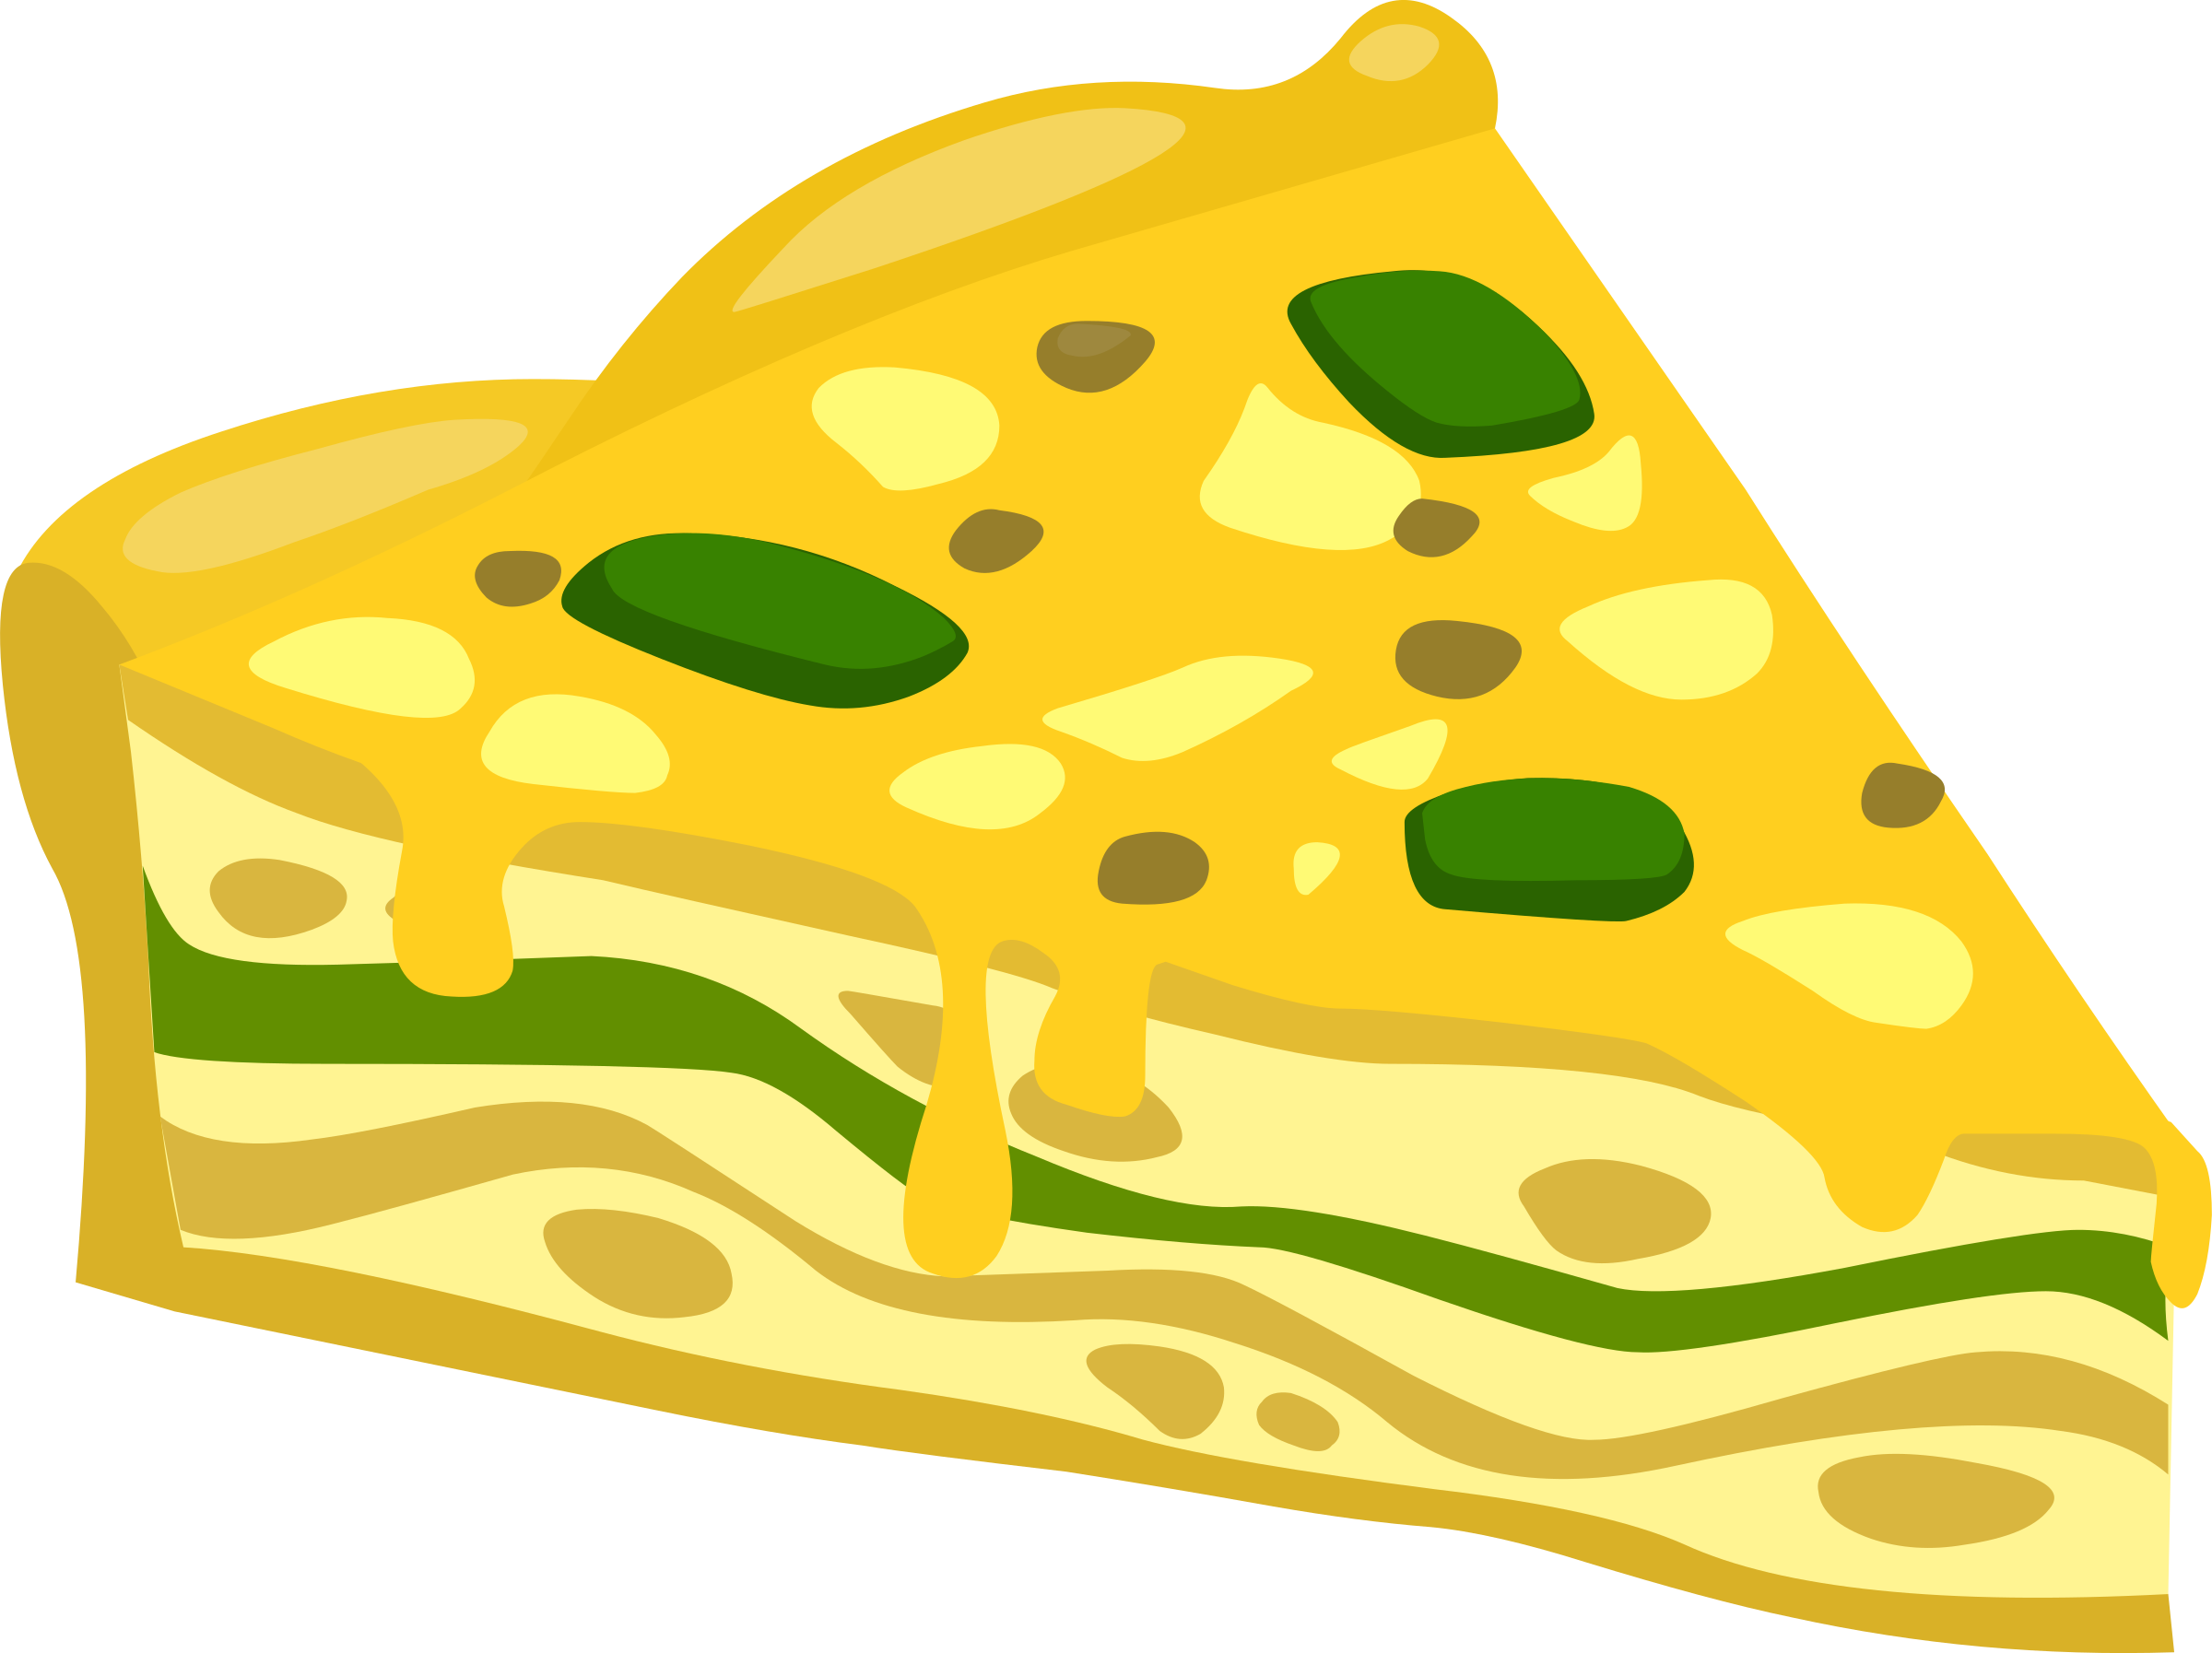 Glitch clipart yellow (PNG) BIG IMAGE Frittata Food